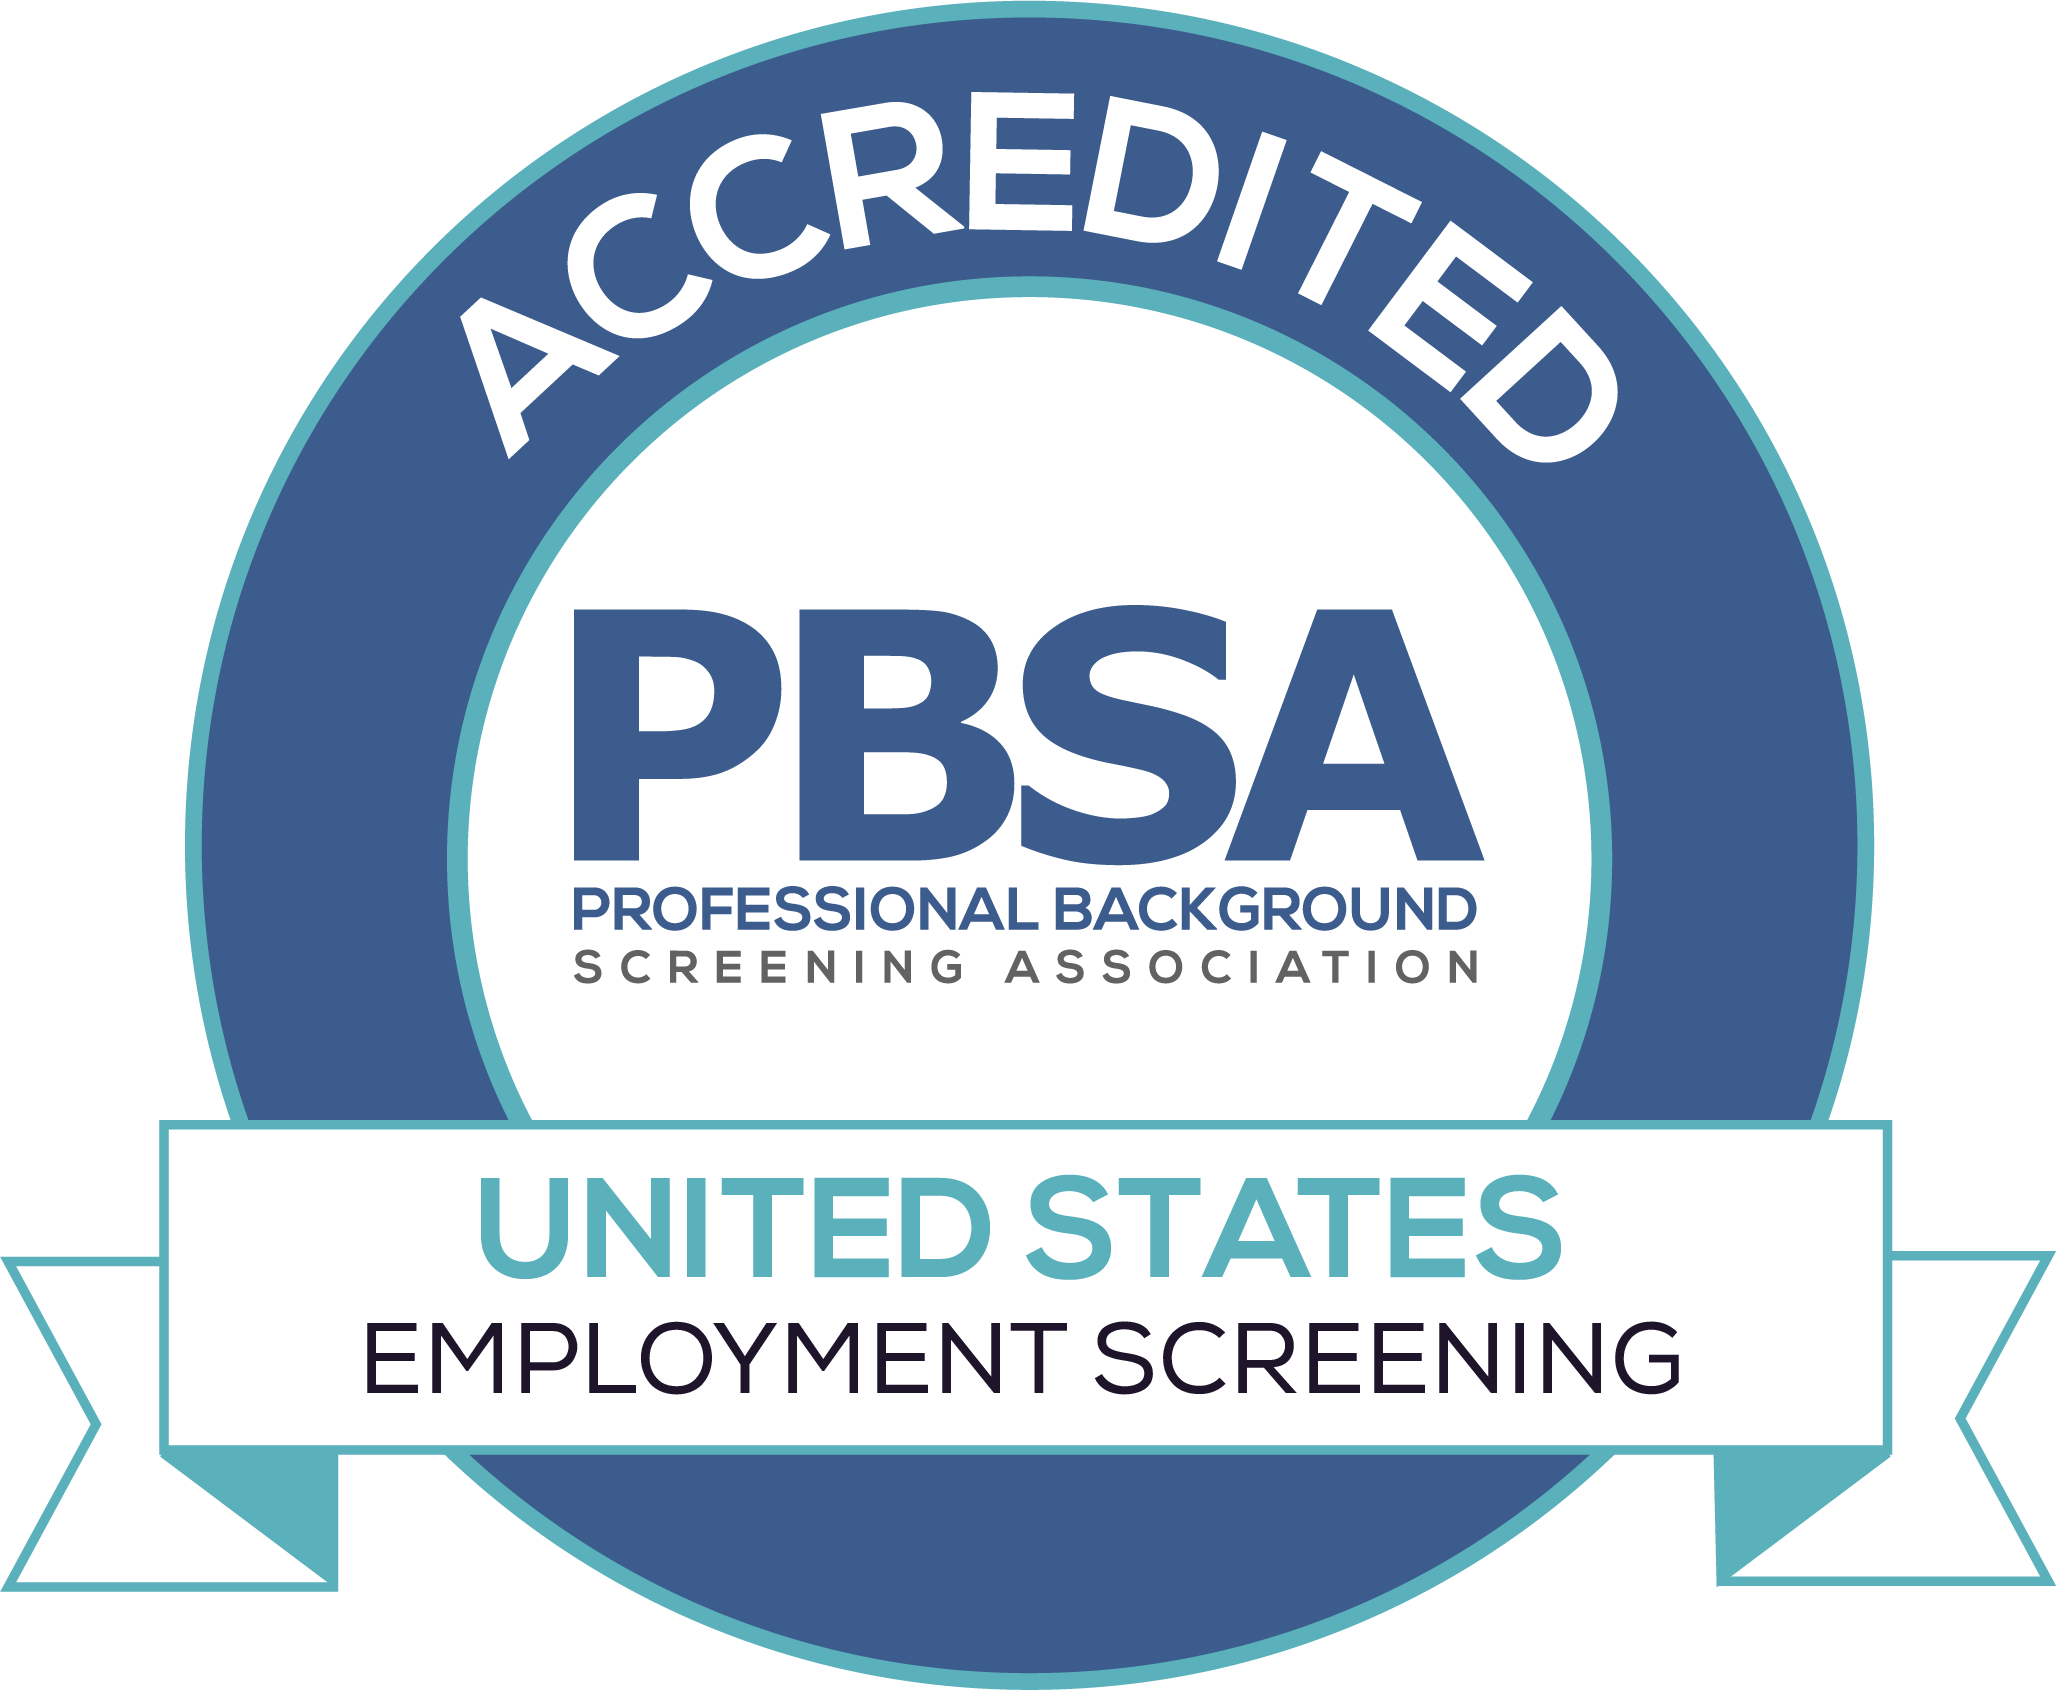 Choice Screening Achieves Background Screening Credentialing Council Accreditation